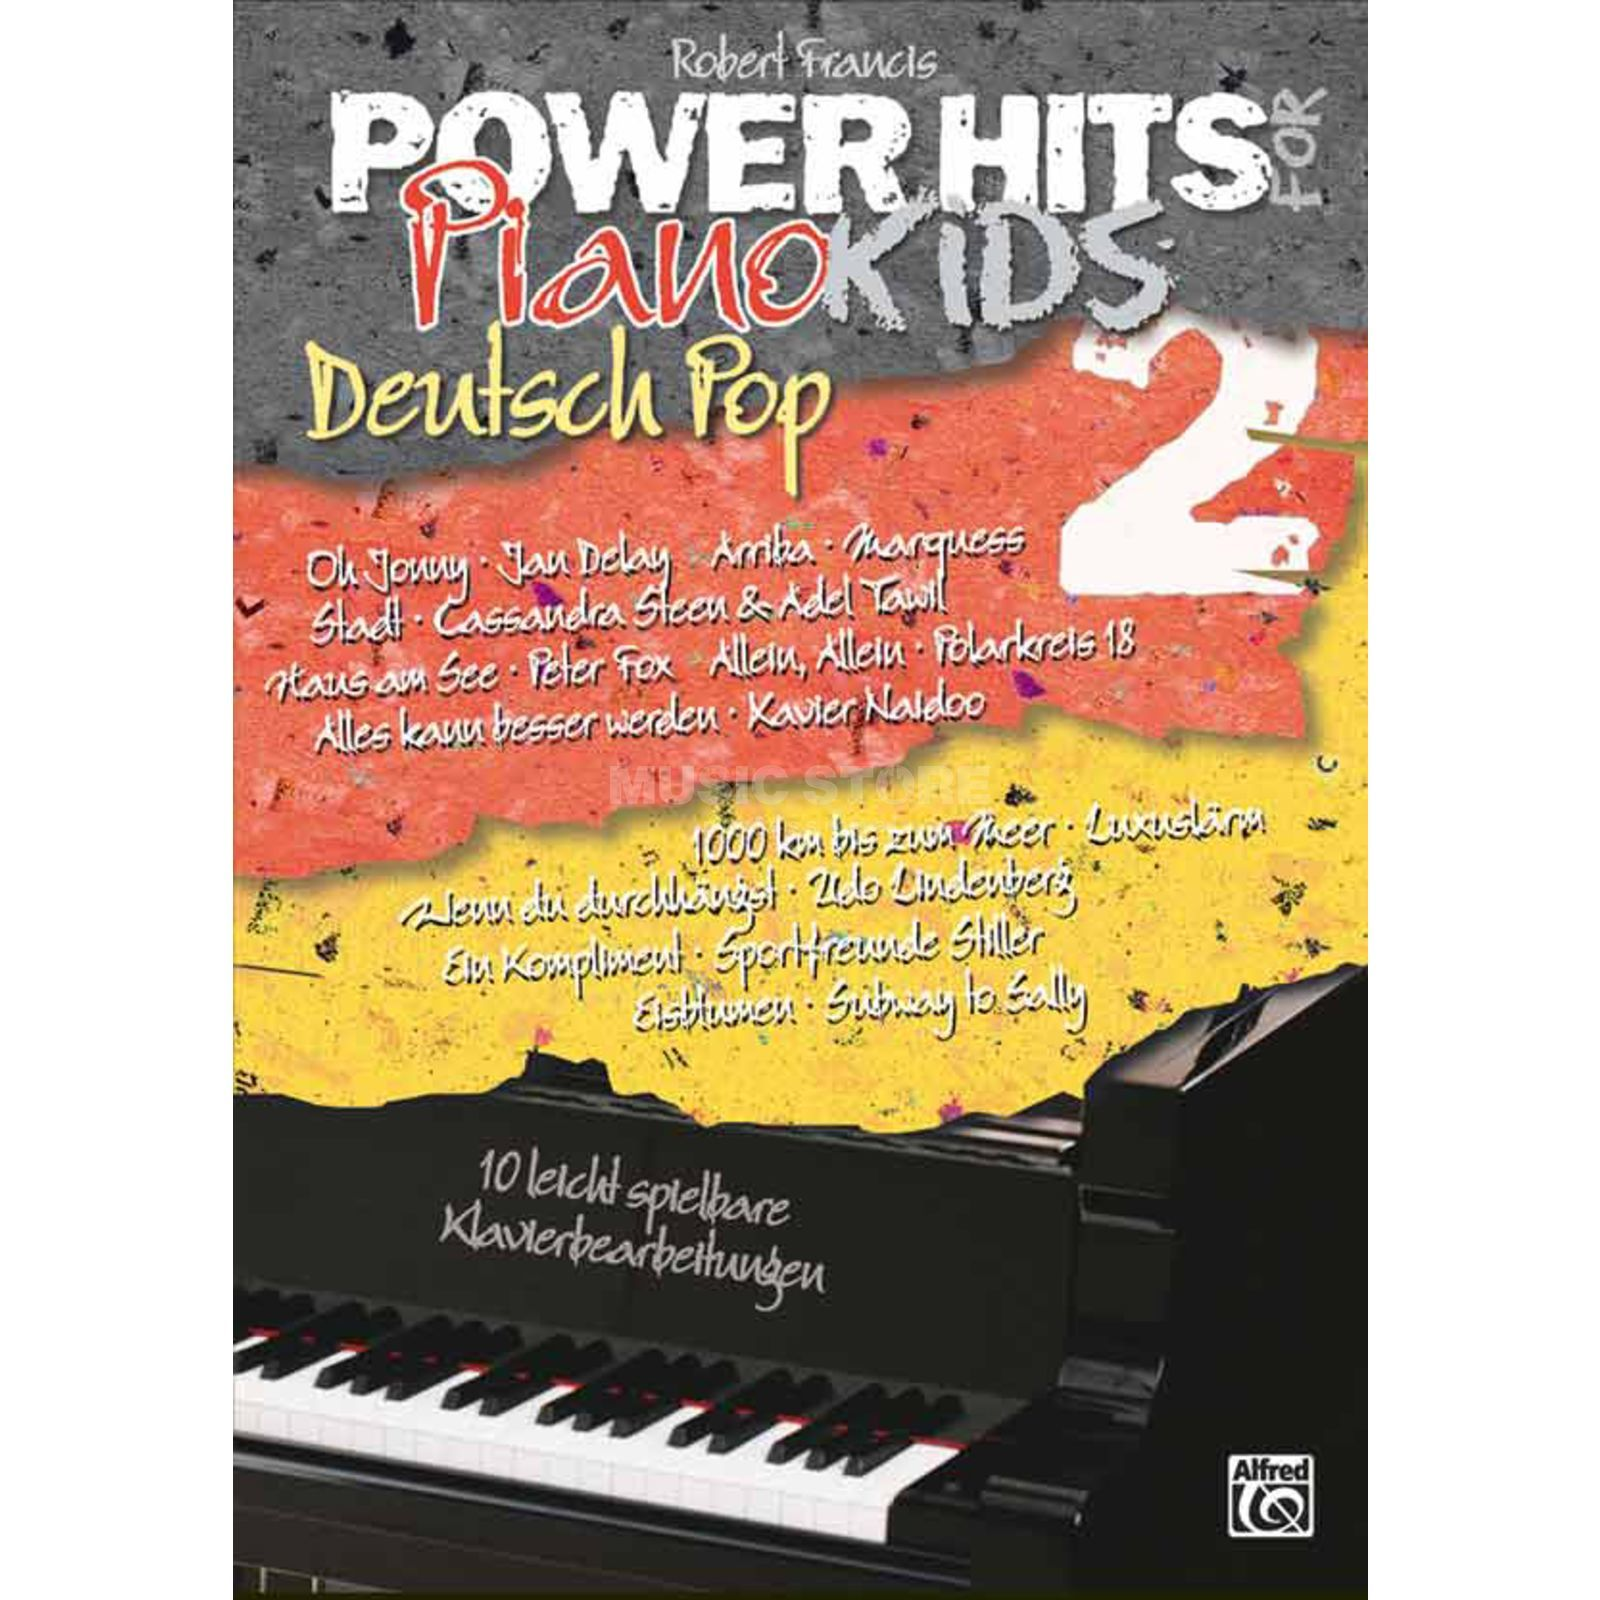 Alfred Music Power Hits Piano 2 Deustch Pop PVG Produktbild